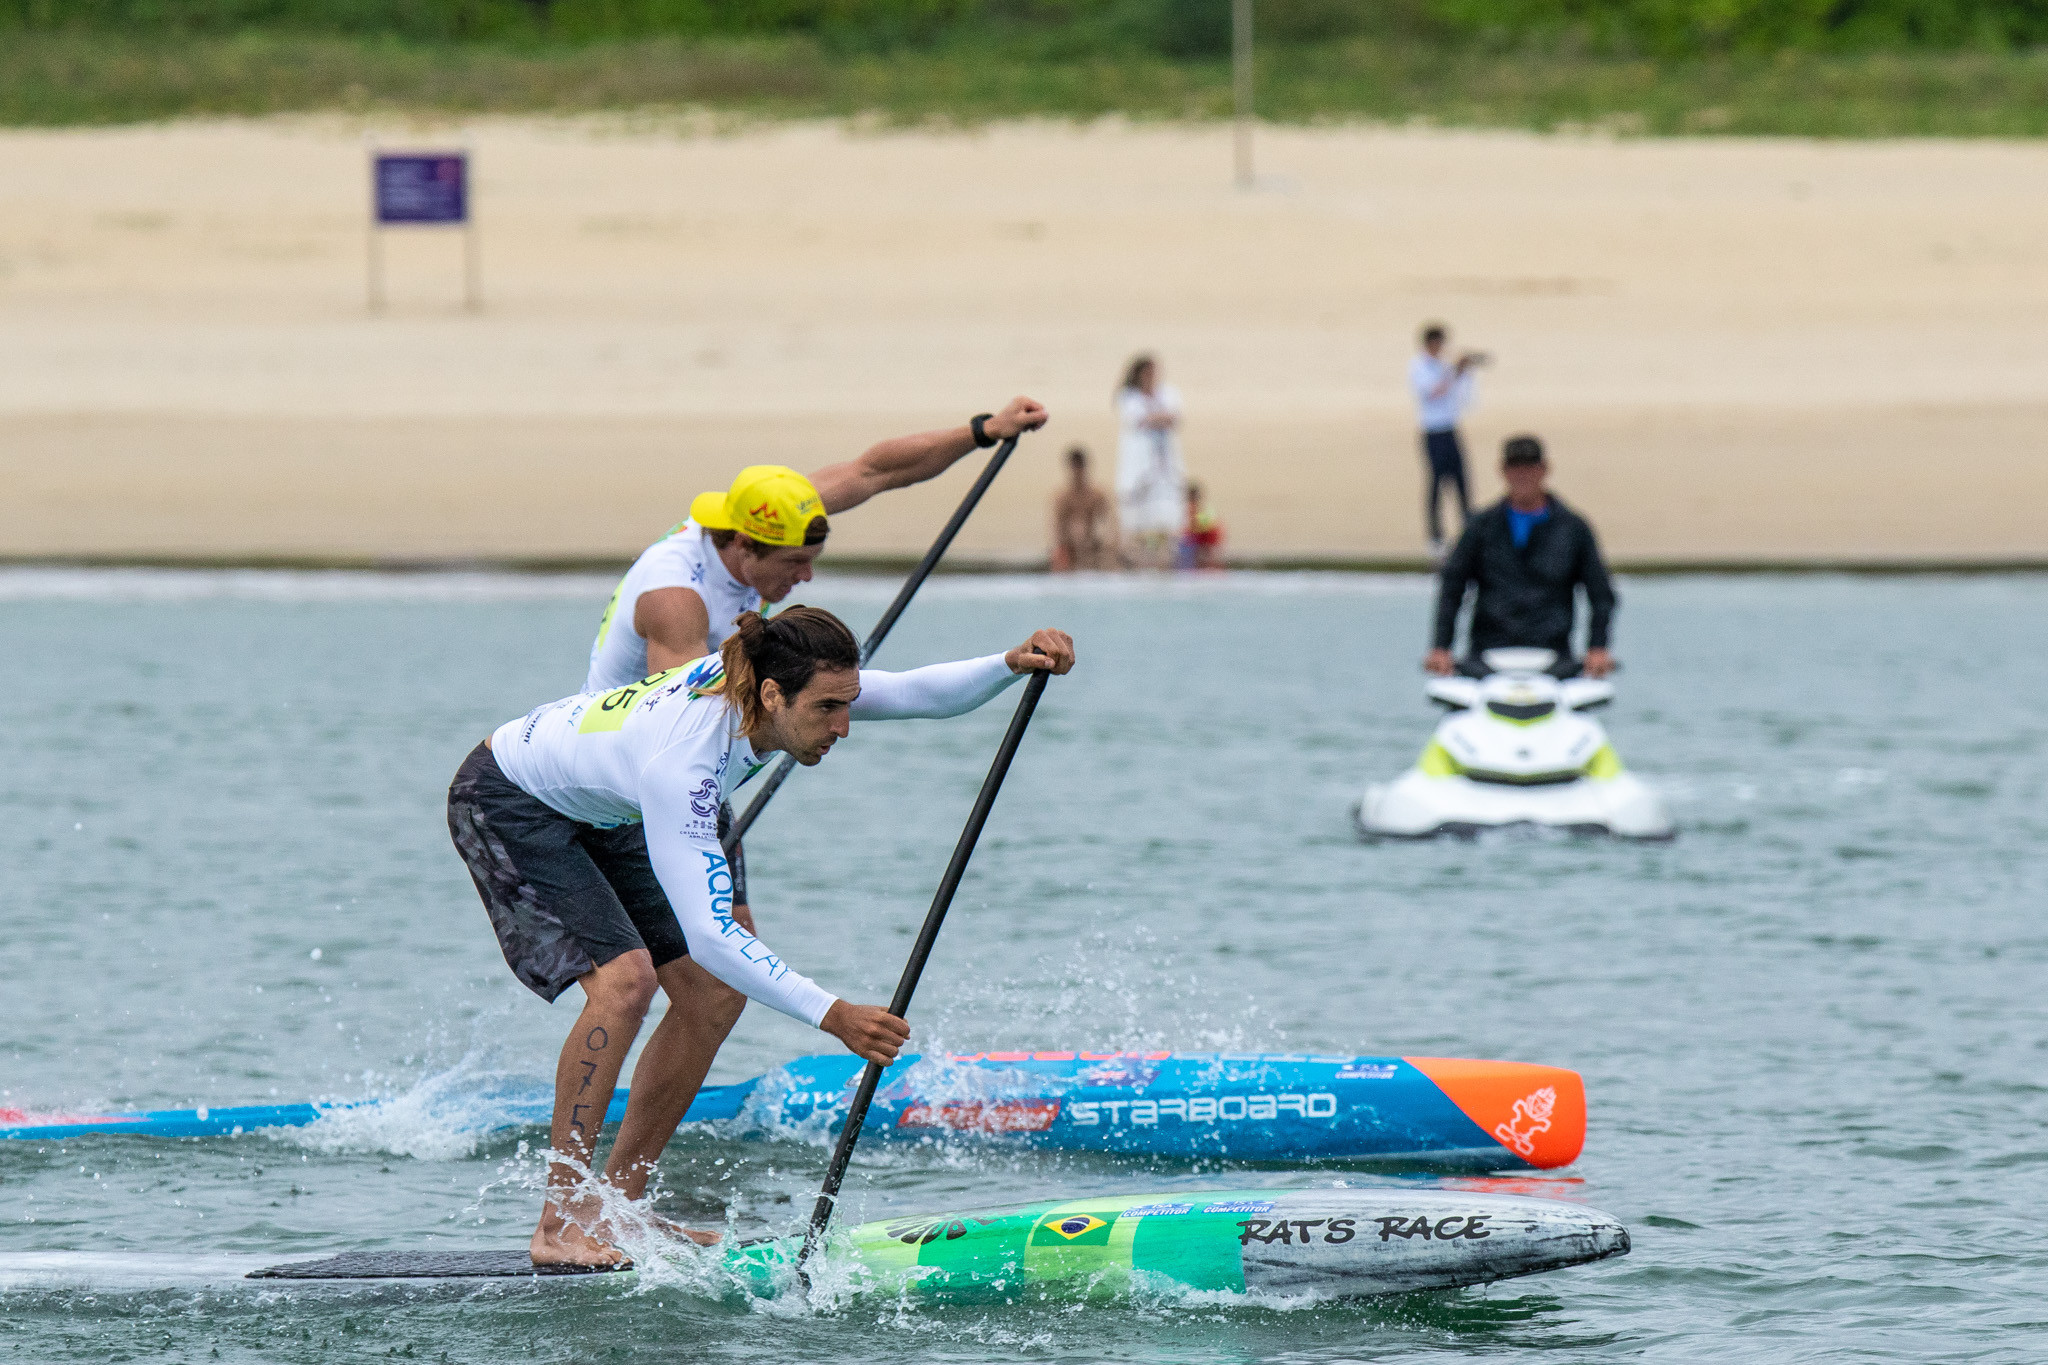 An ISA SUP World Championships took place last year in China ©ISA